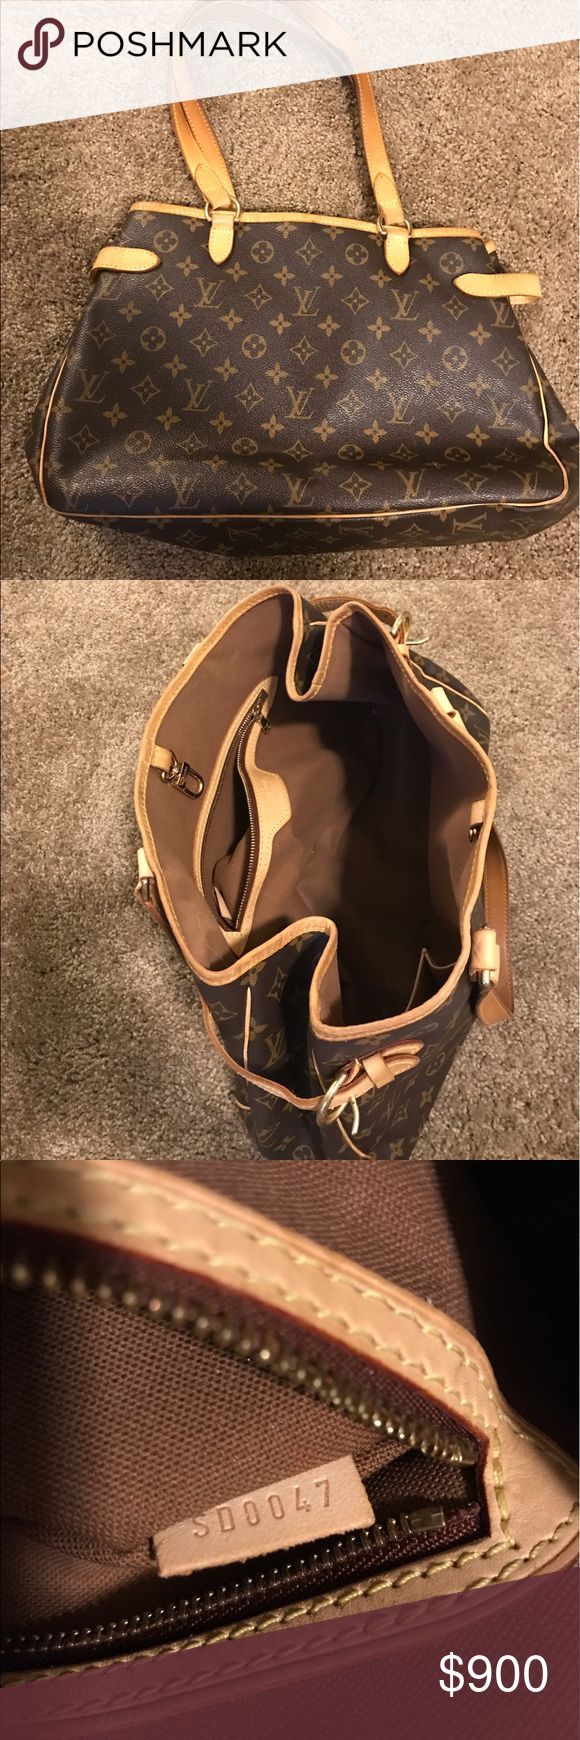 authentic Louis Vuitton Authentic Louis Vuitton.  Please see date code for authenticity.  In super great condition and clean inside and out. Louis Vuitton Bags Totes